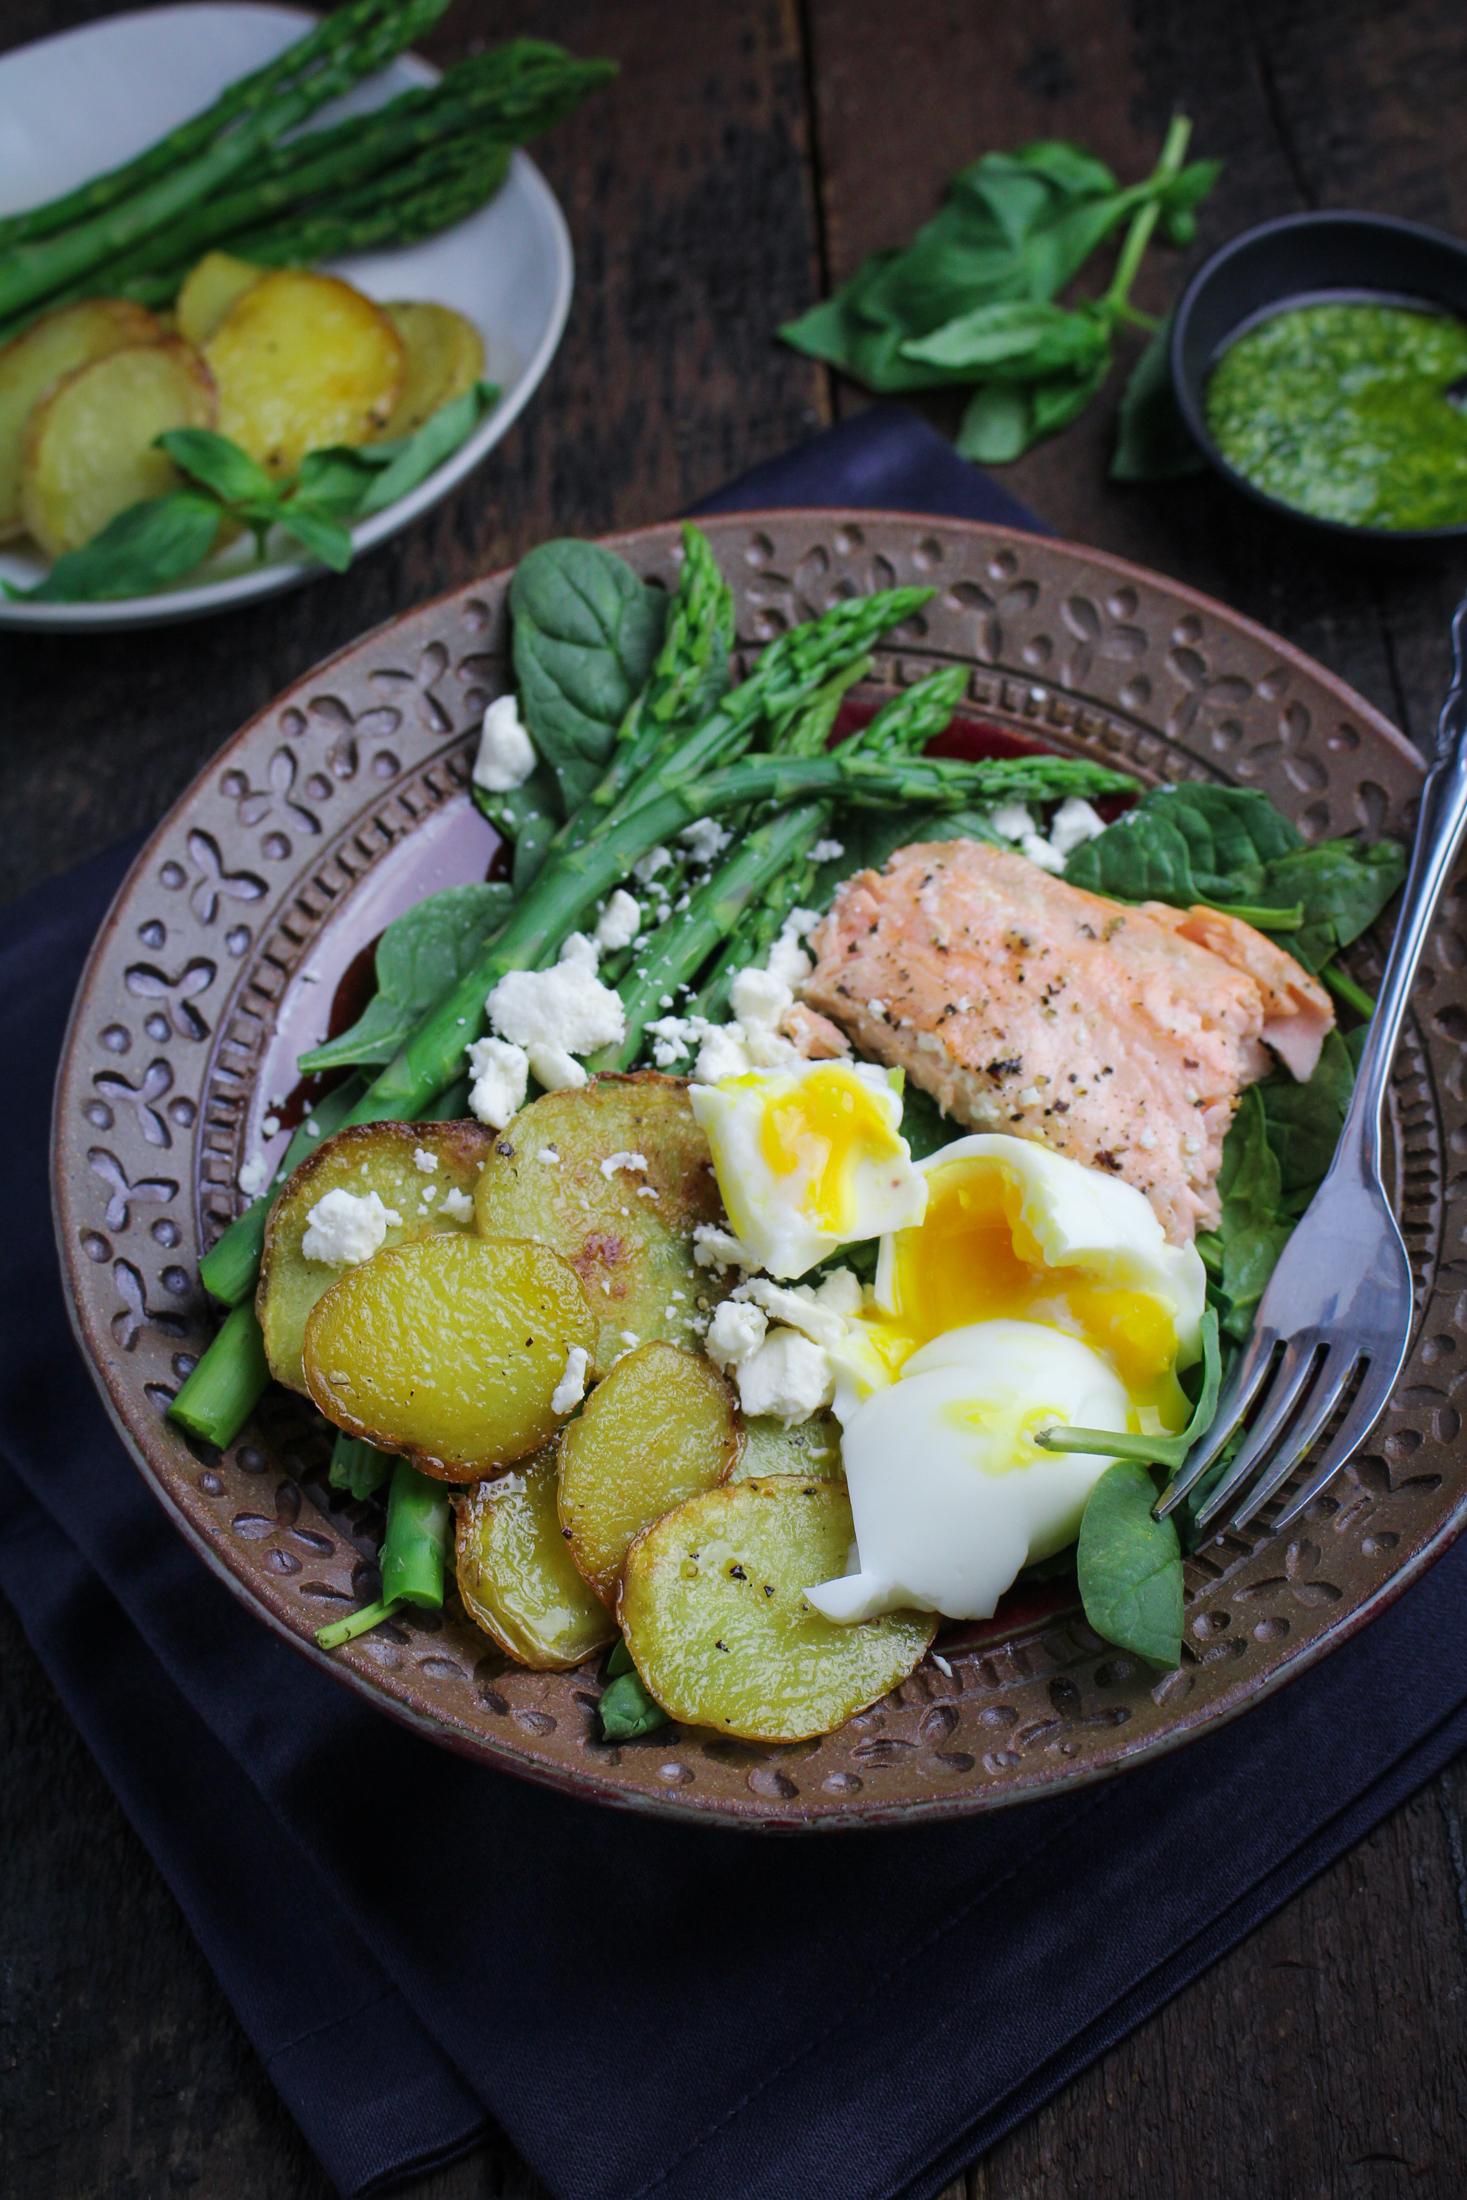 Nights for One // Salmon, Asparagus, and Roasted Potato Salad with Pesto Dressing